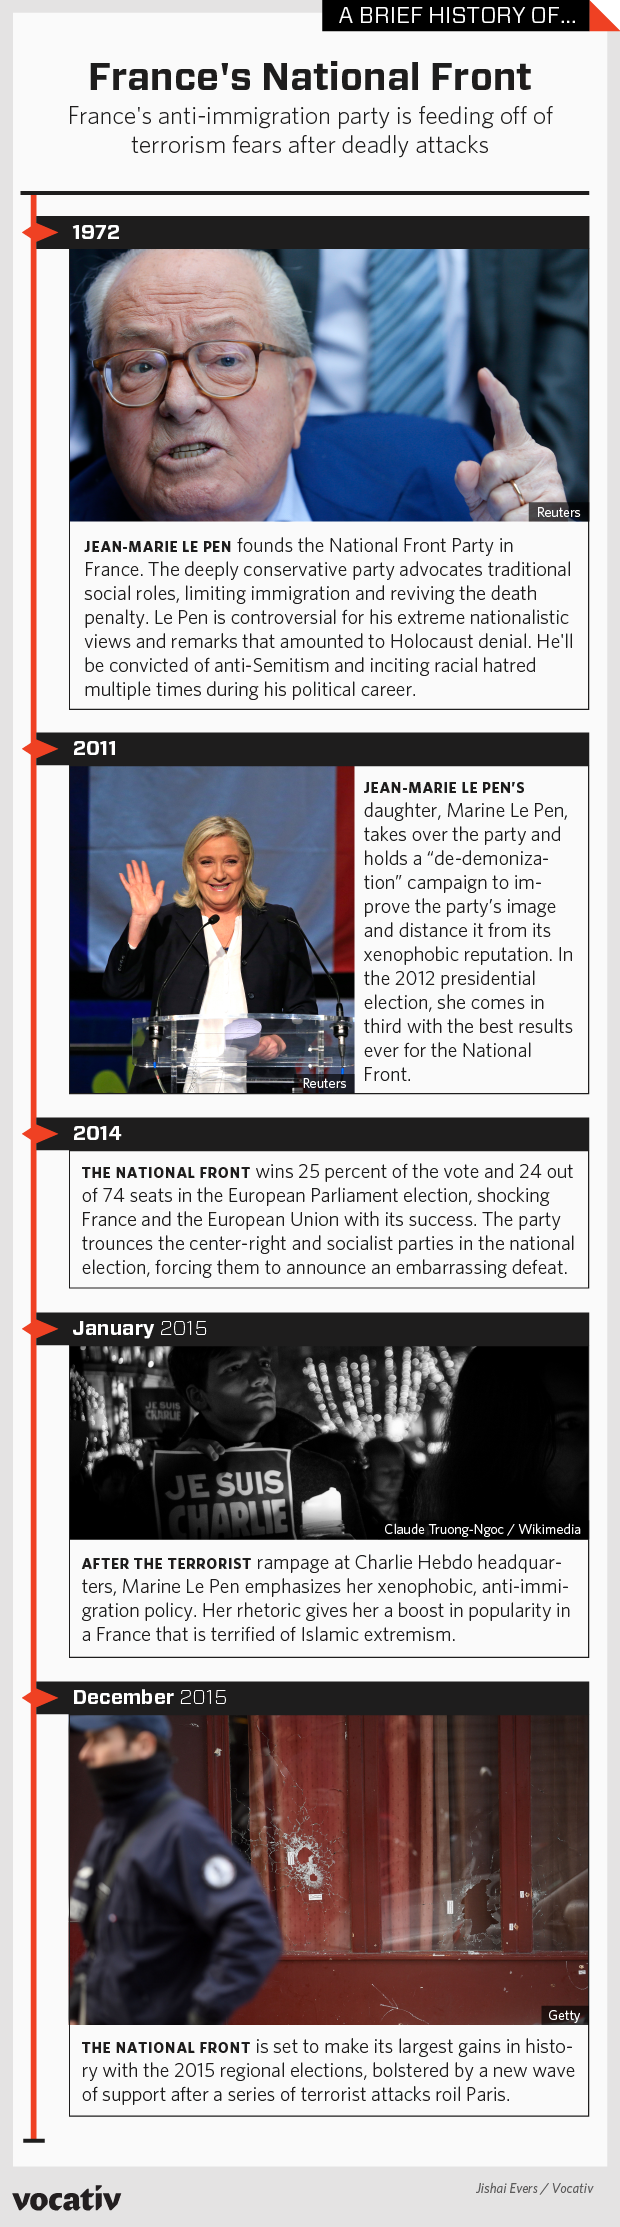 a history of the front national in france National front: detailed profile of the national front, a right-wing french  fine  on le pen for comments he had made in 2005 that violated france's statute on.